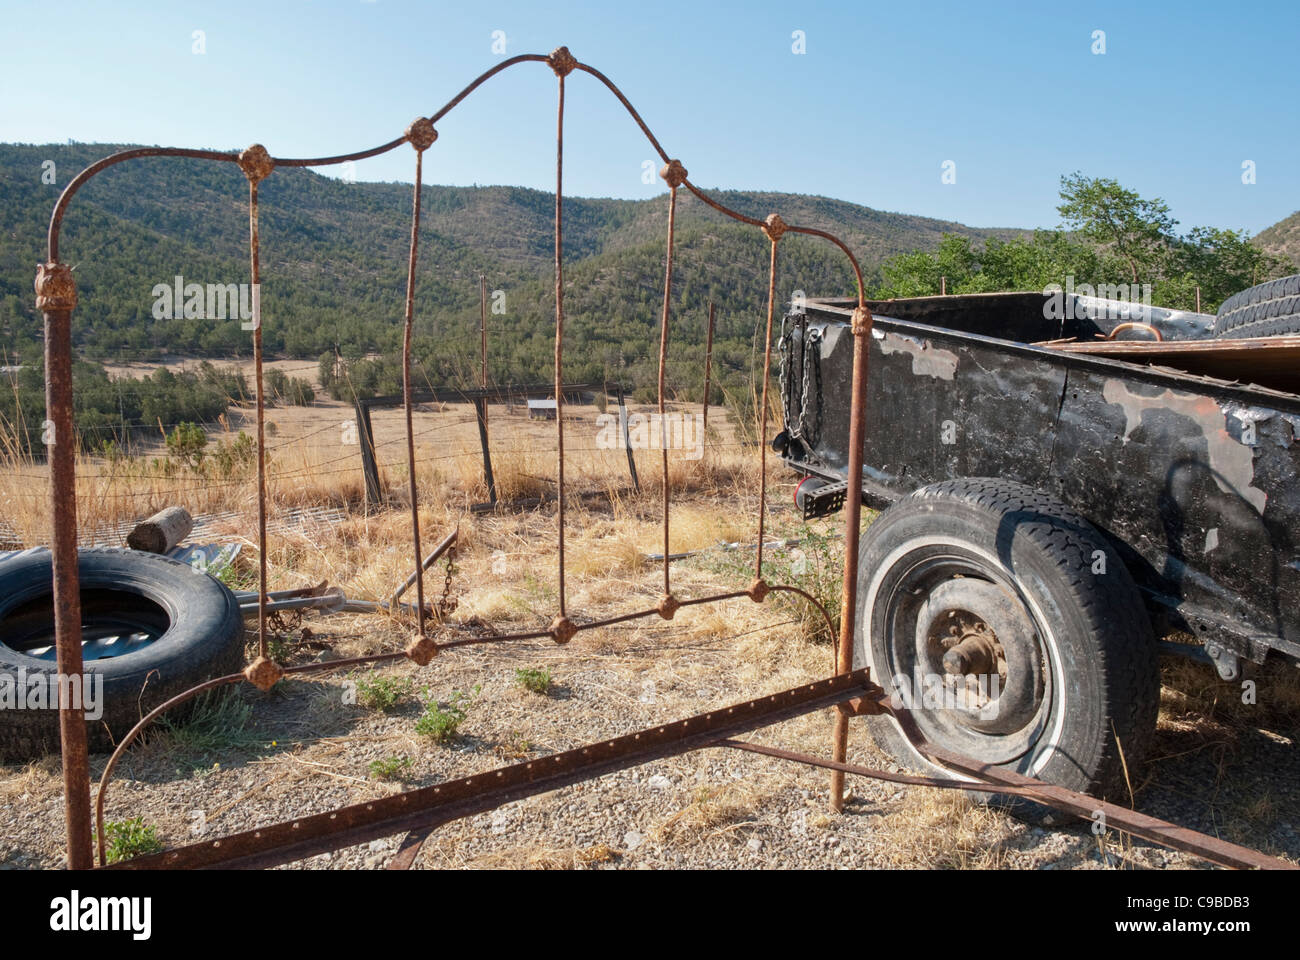 Roadside junk adds local flavor along Route 70 in the Hondo Valley in southern New Mexico. - Stock Image